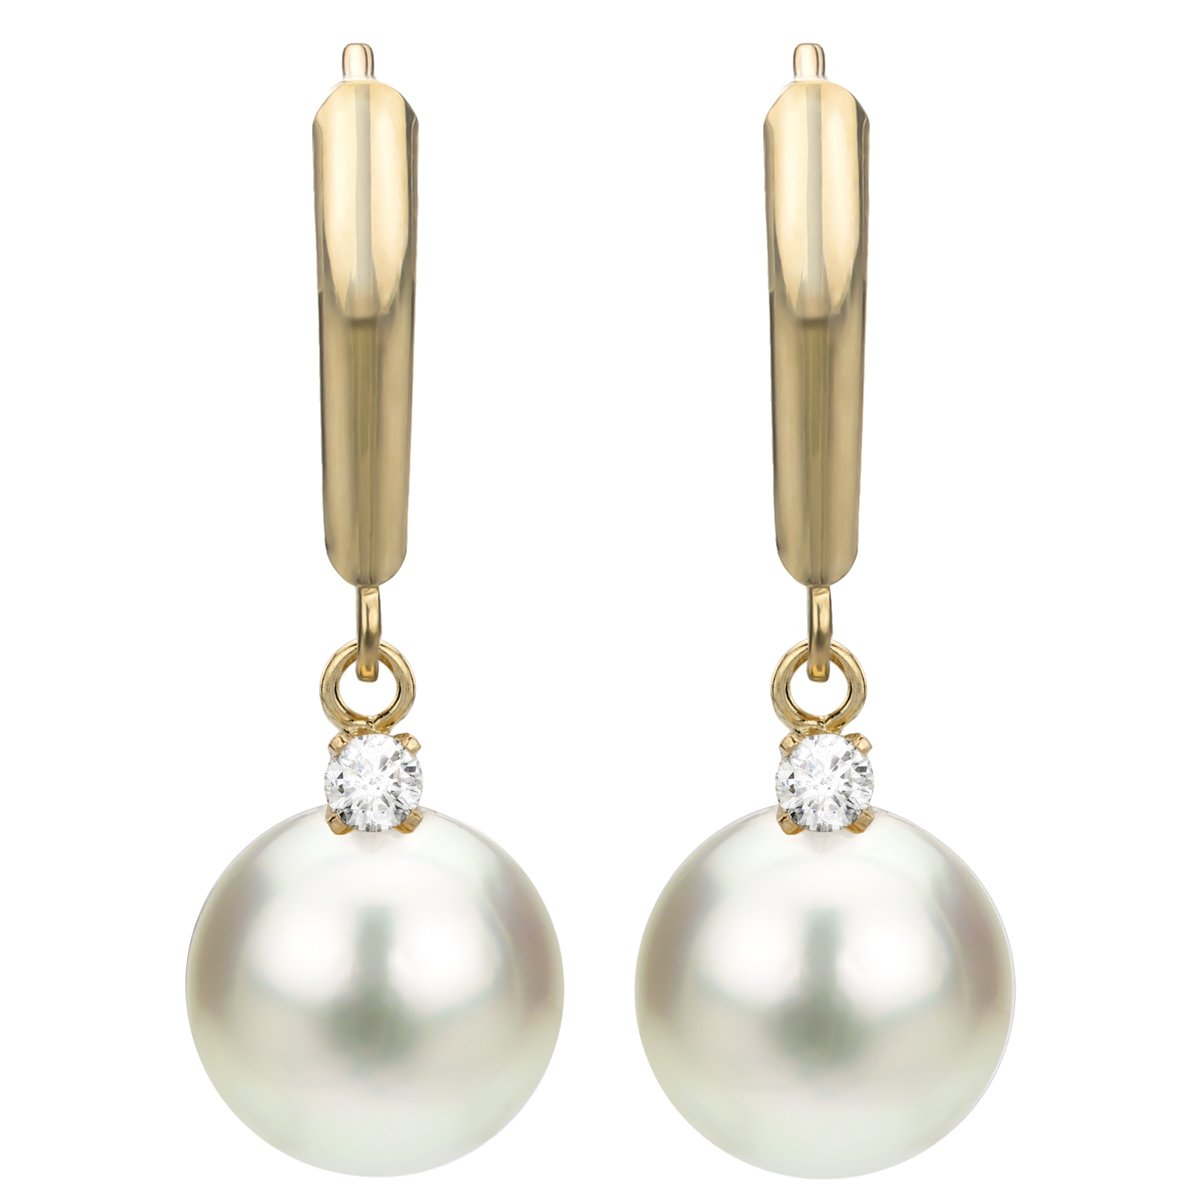 14k Yellow Gold 1/10cttw diamond 9-9.5mm White Round Freshwater Cultured Pearl Lever-back Earrings by La Regis Jewelry (Image #3)